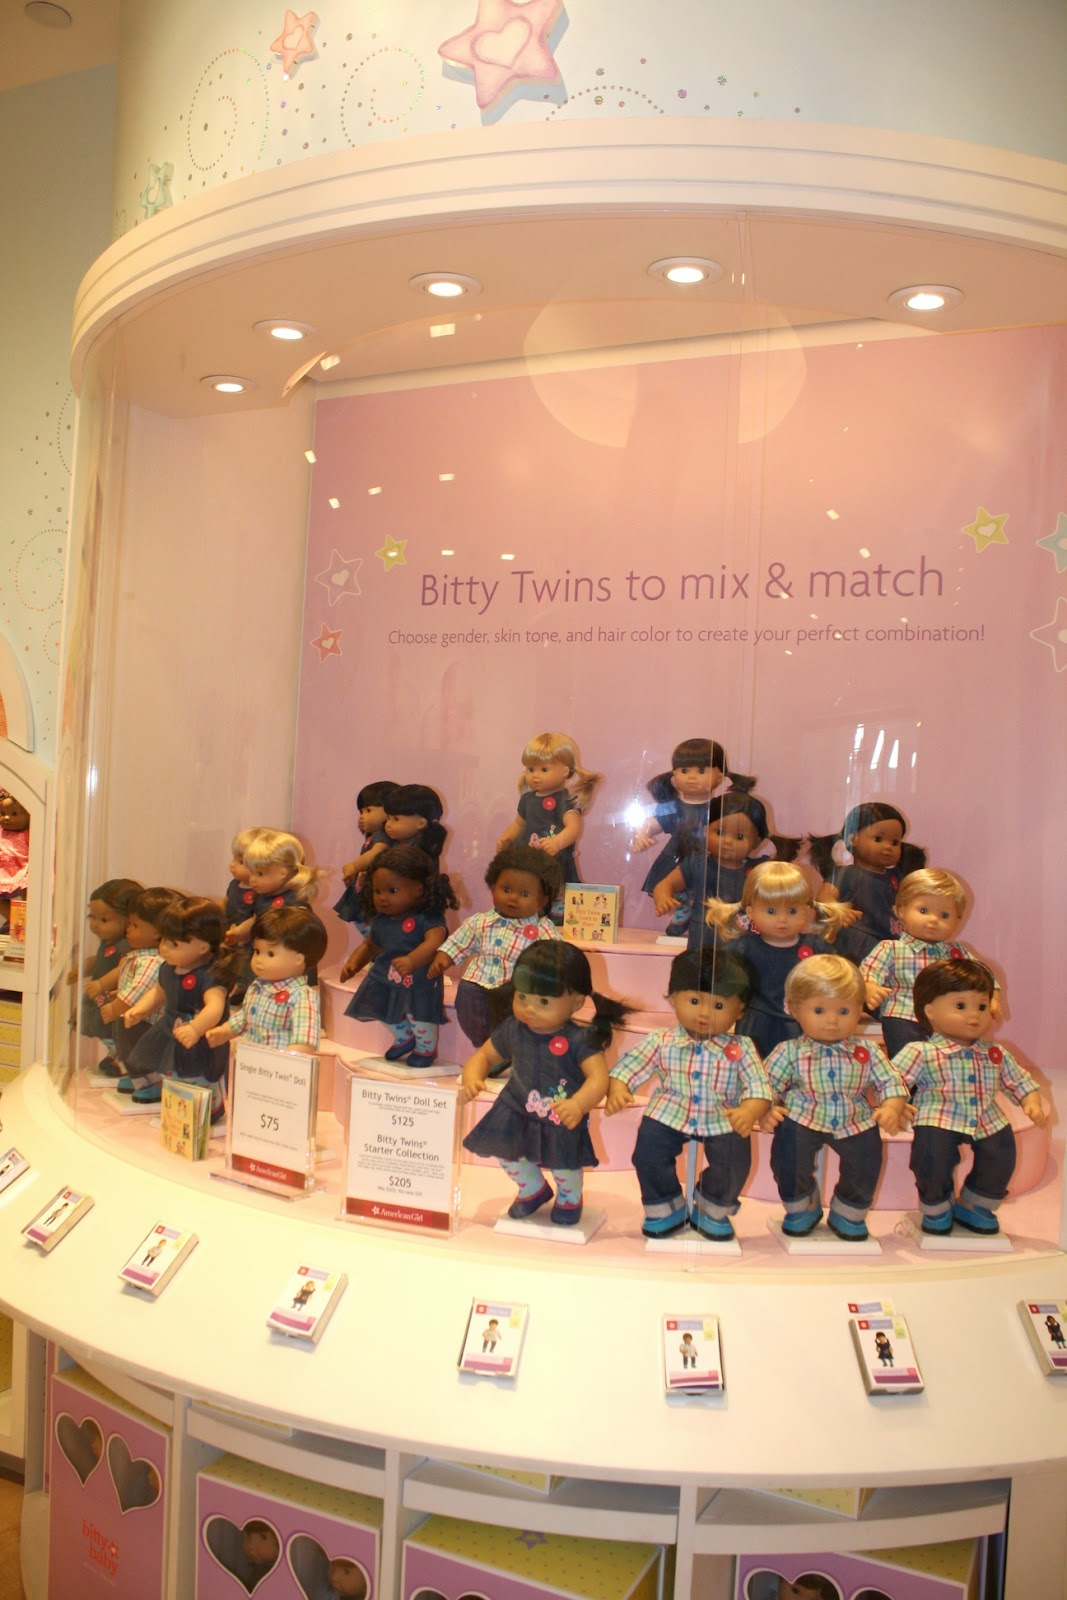 Baby Dolls Playing Youtube American Girl Doll Store At The Grove Every Girls 39; Dream